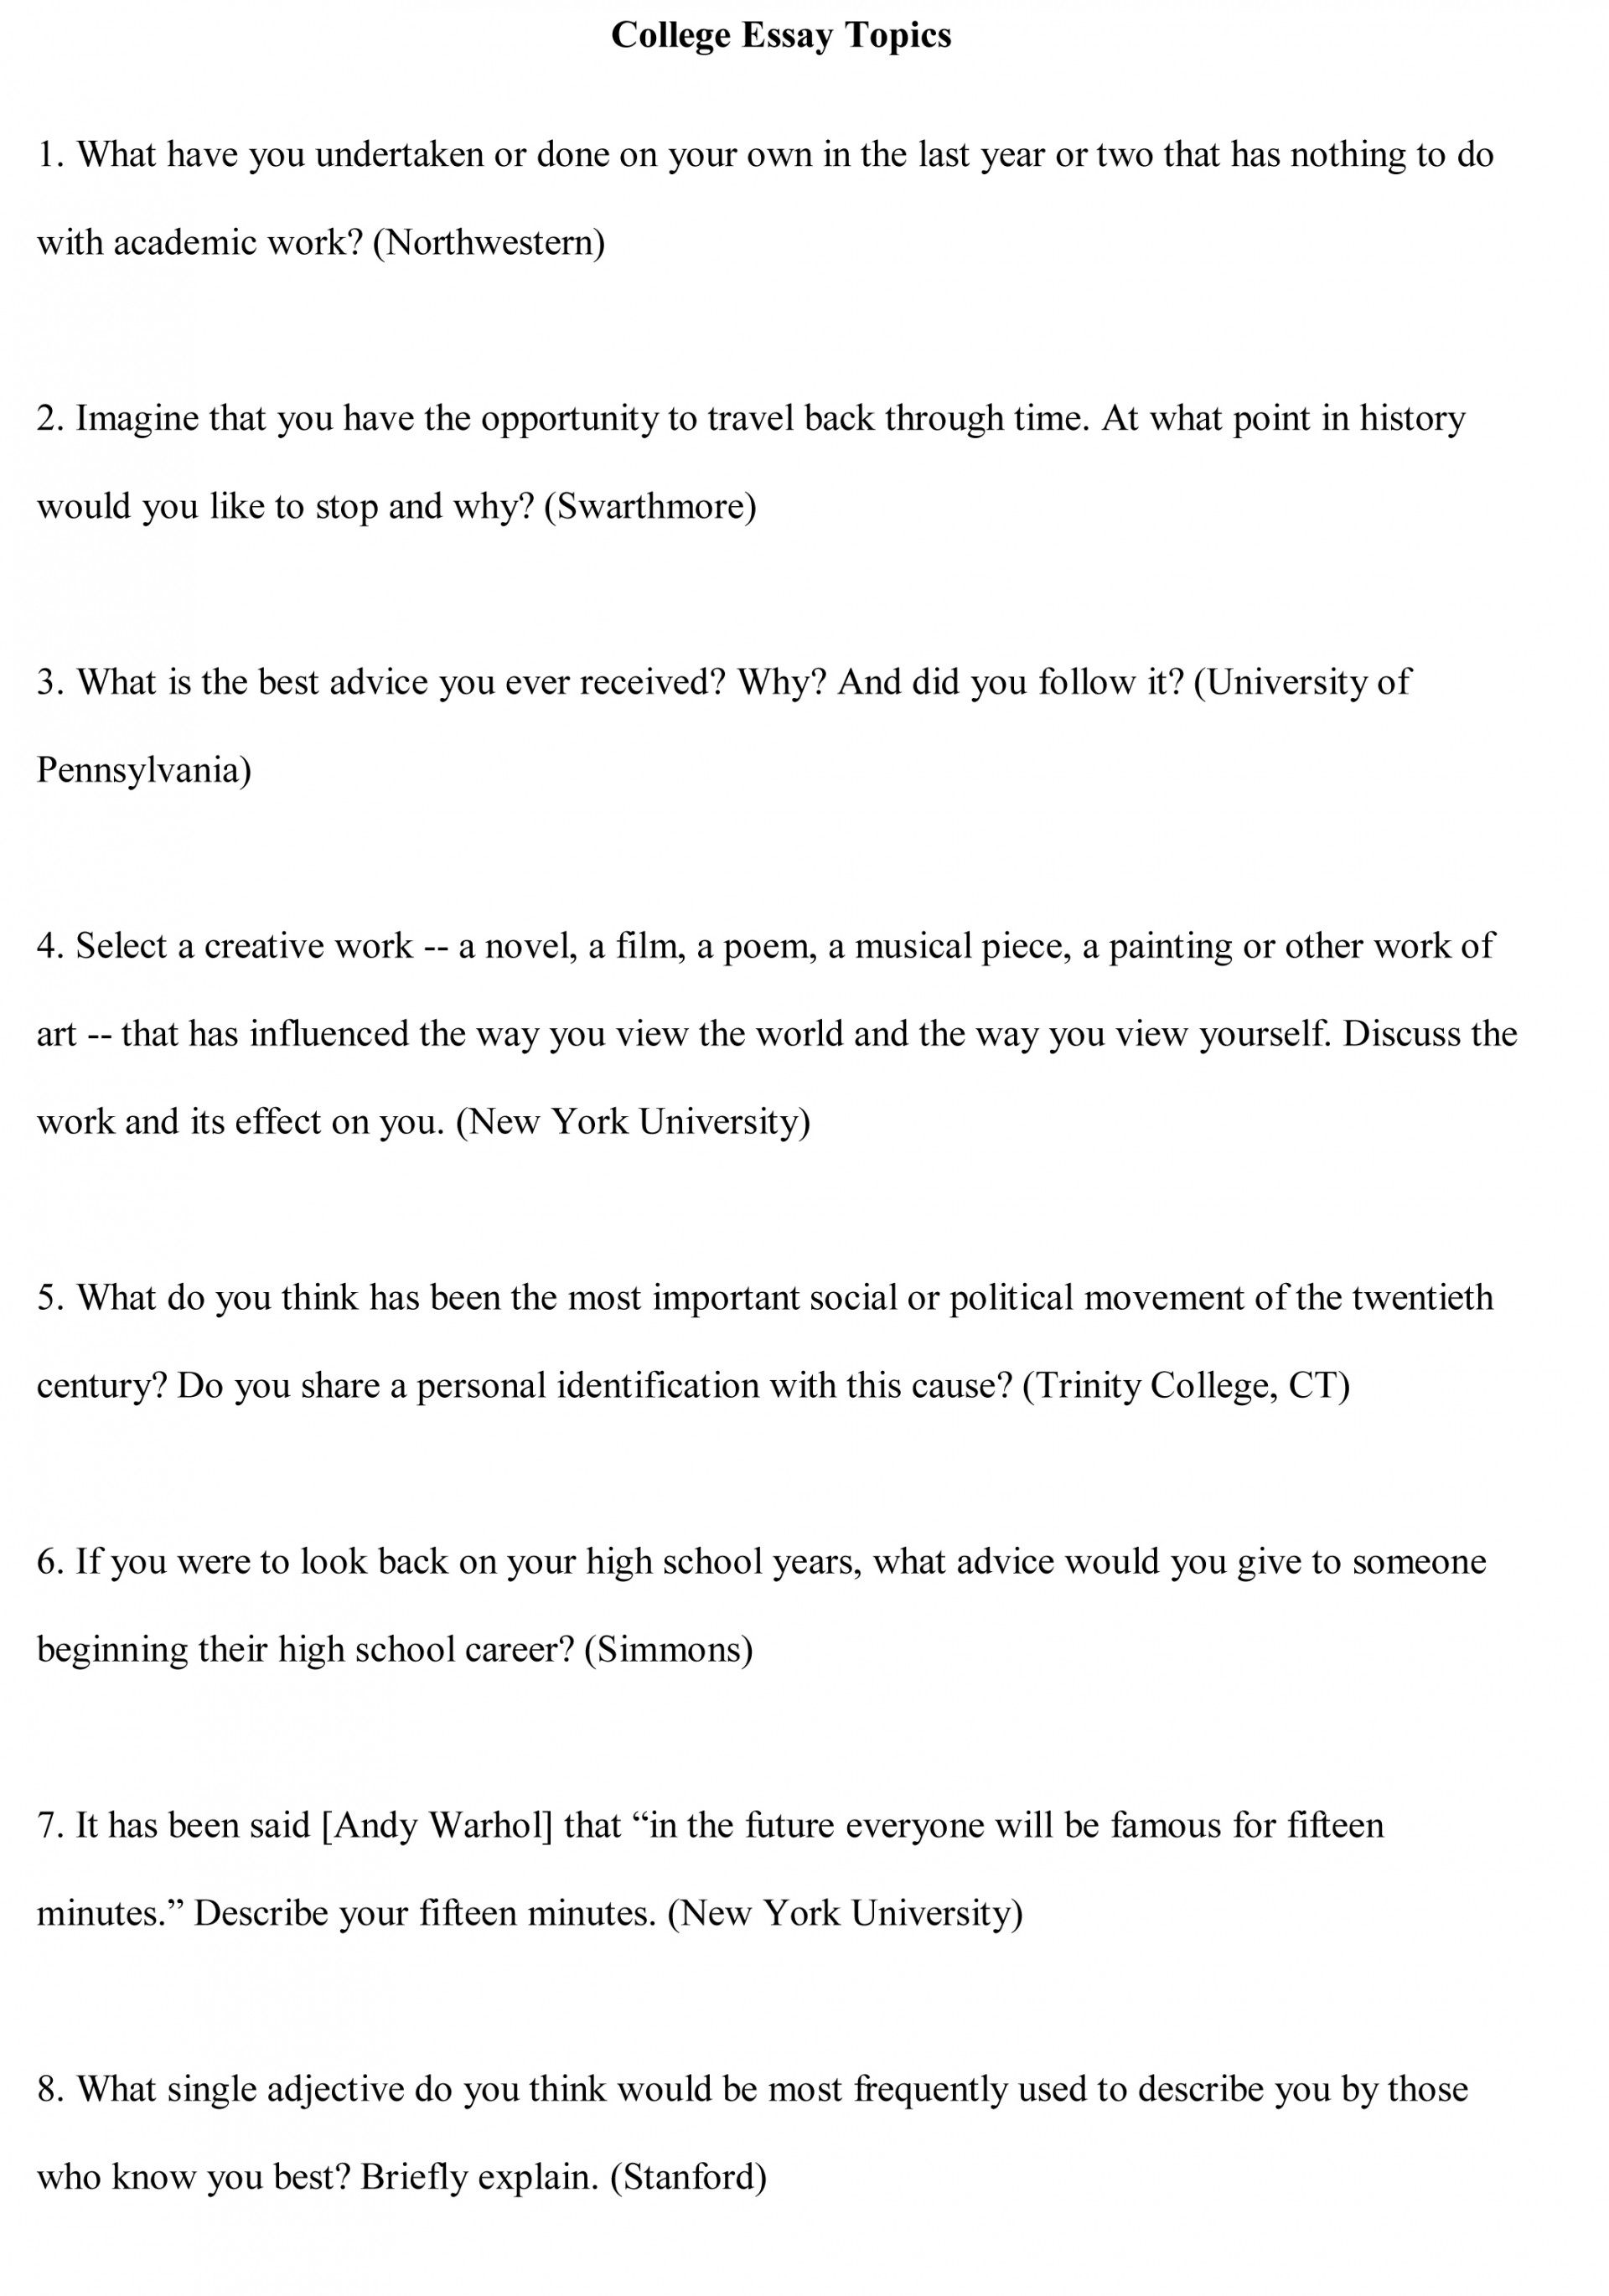 003 College Essay Topics Free Sample1 Prompts Impressive Writing Prompt Examples Amherst 2017 Pomona 1920